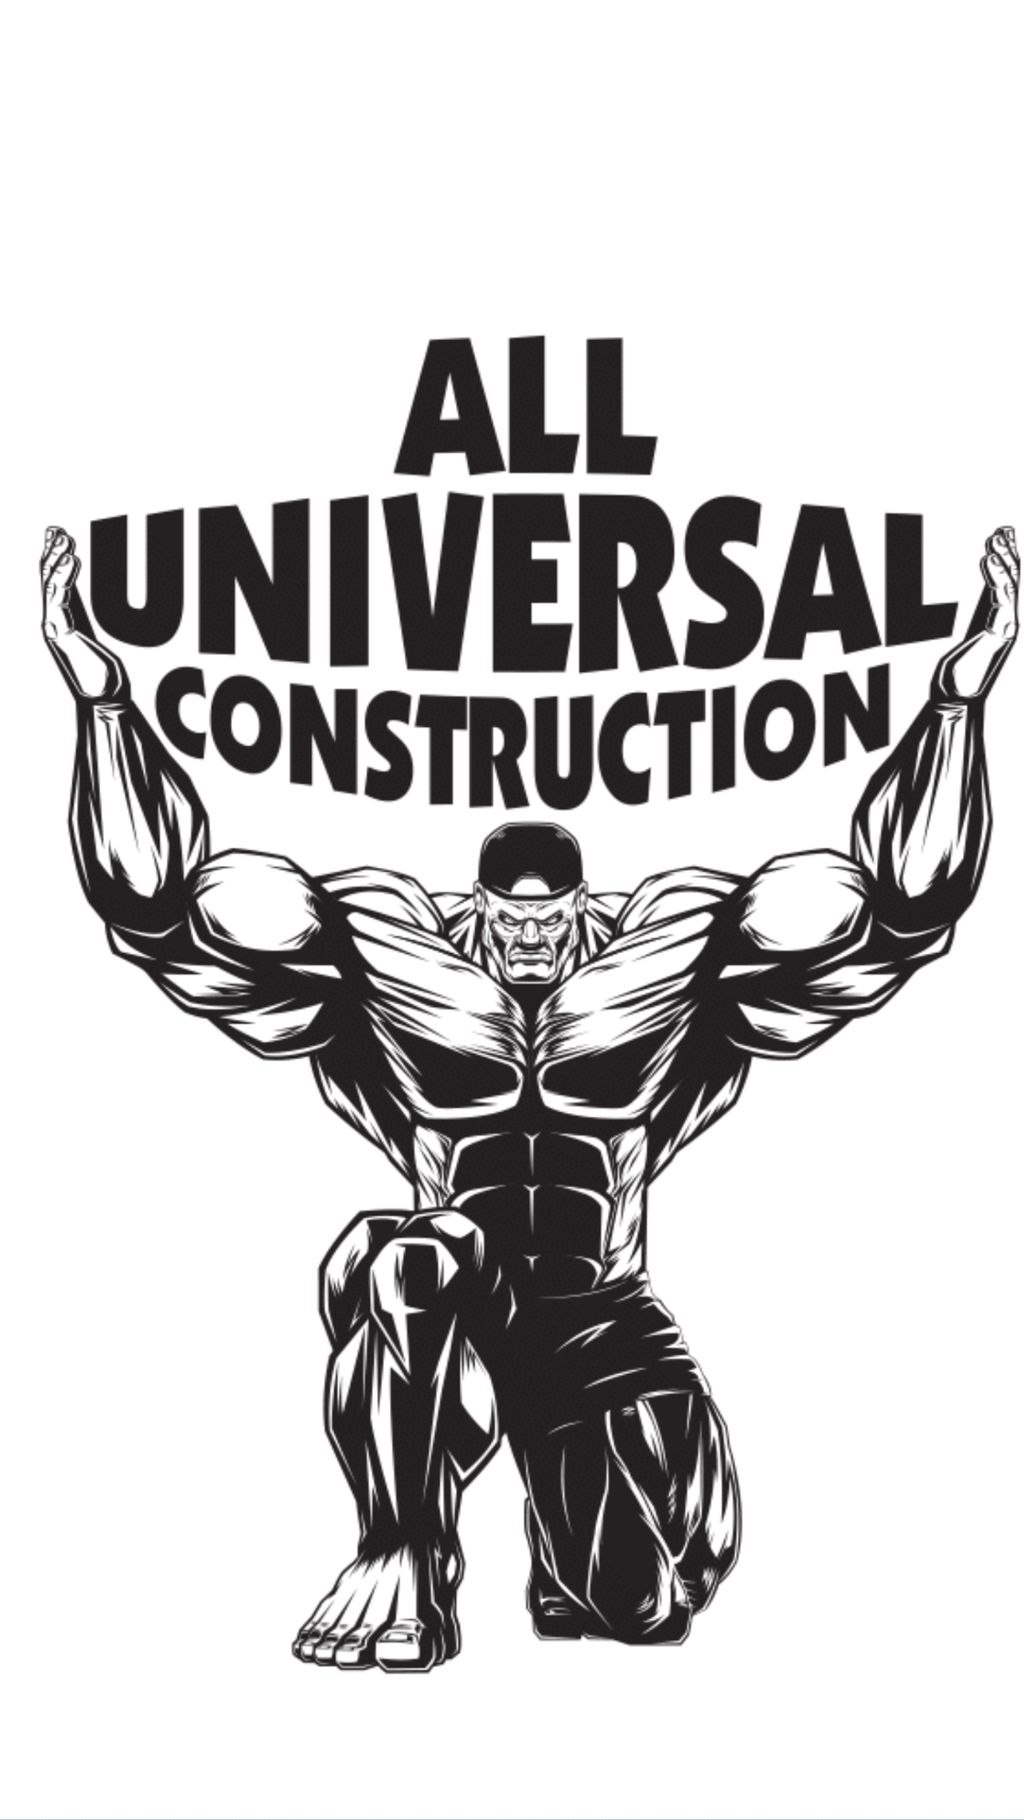 All Universal Construction